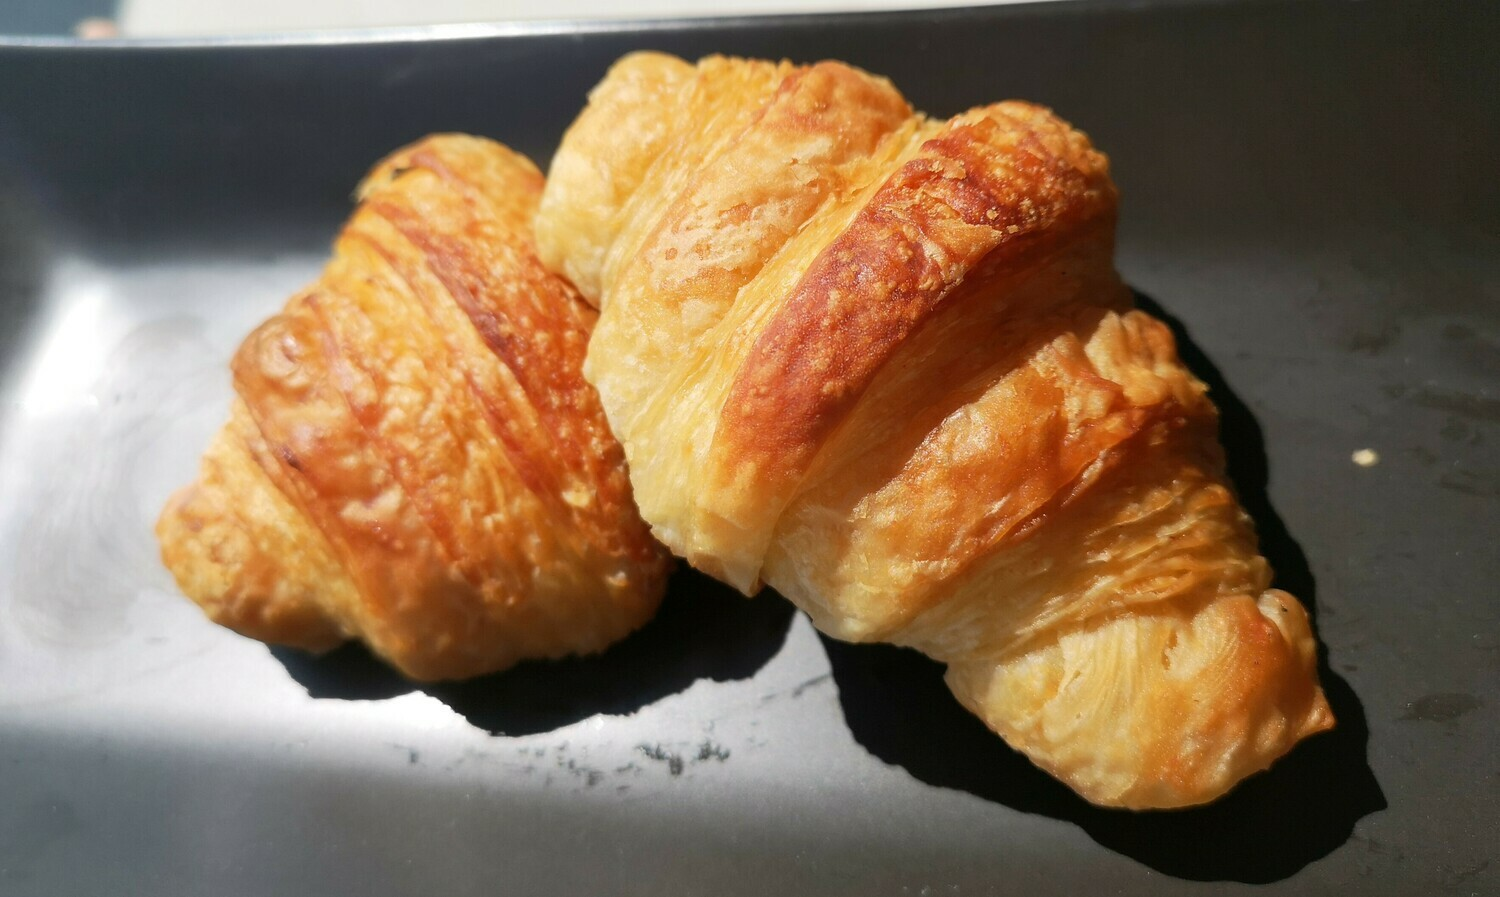 Vegan French Croissant. Plain and with chocolate filling.